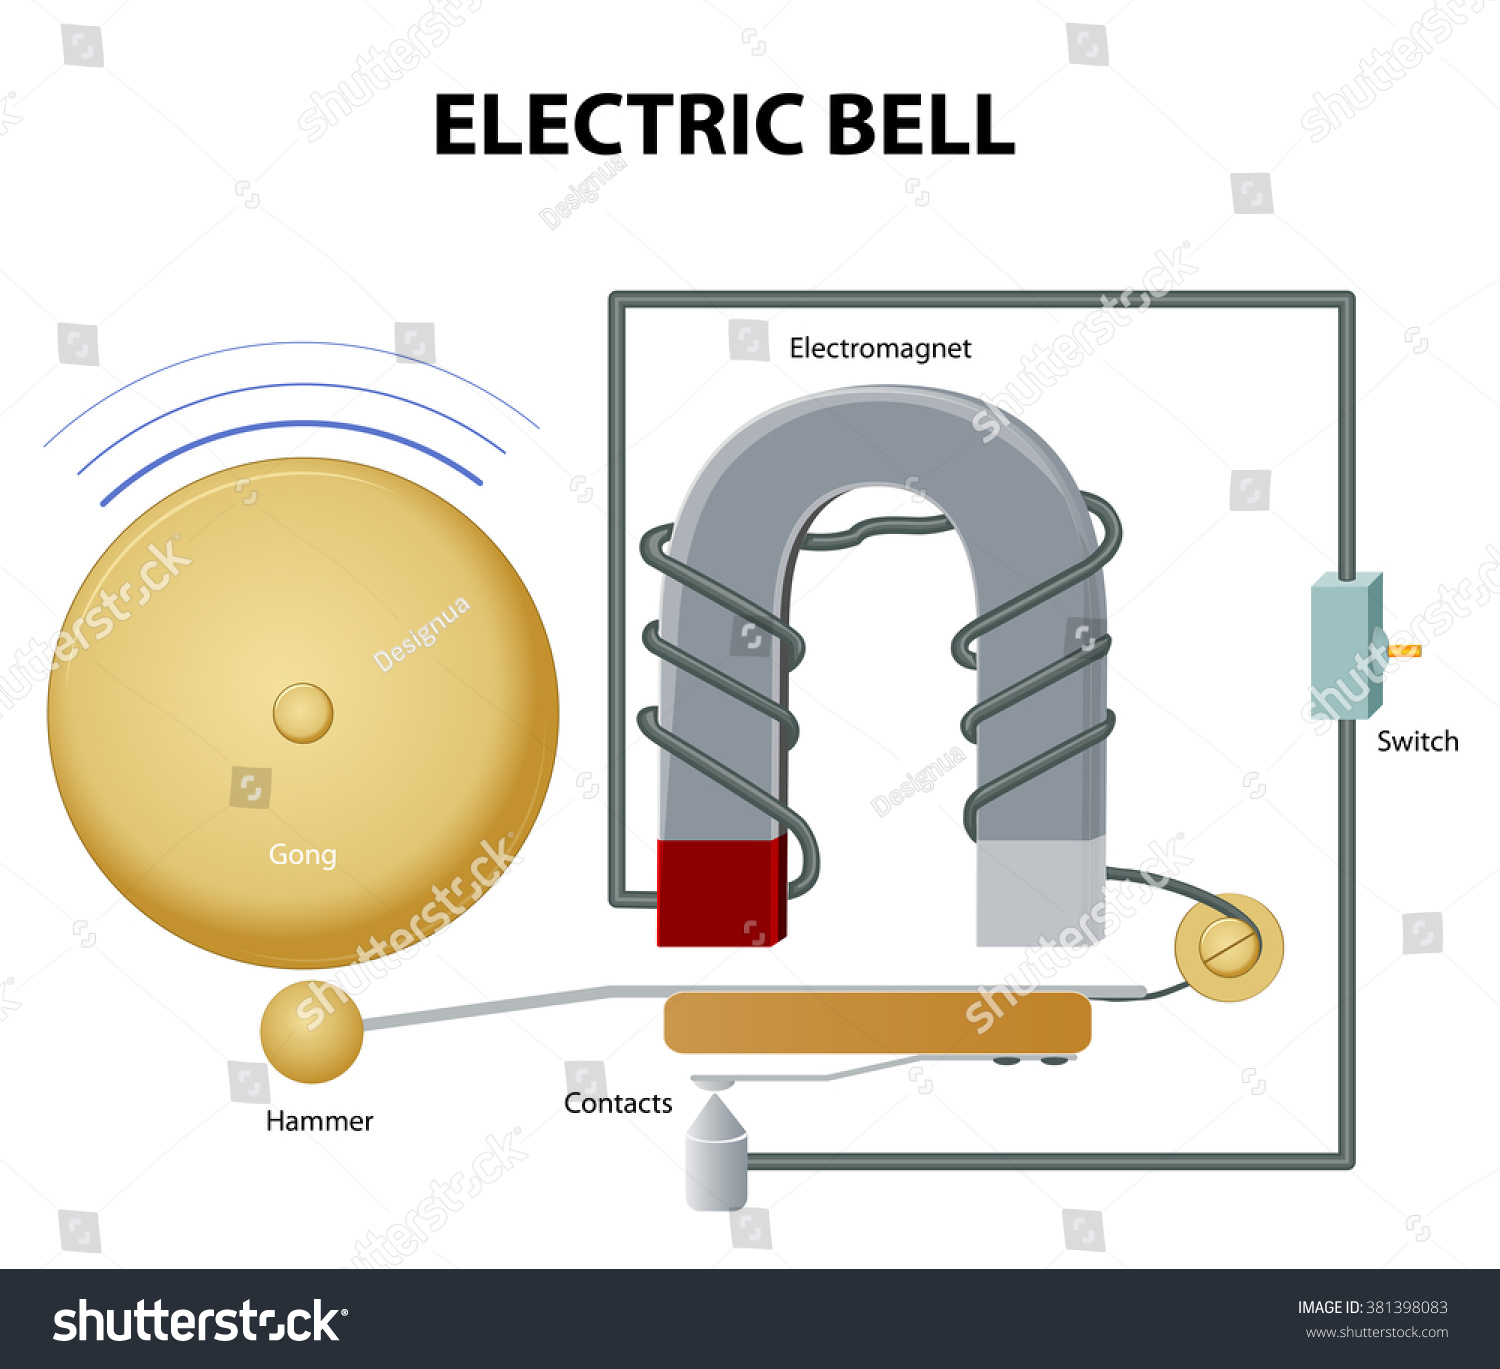 How Electric Bell Works Electromag  Pulls 381398083 in addition Wireless In Wall Speaker likewise Stock Illustration Fire Alarm Icon Cartoon Style further Ii Breeching Inlet likewise Stock Images Red Retro Alarm Bell Image22225994. on fire alarm bell